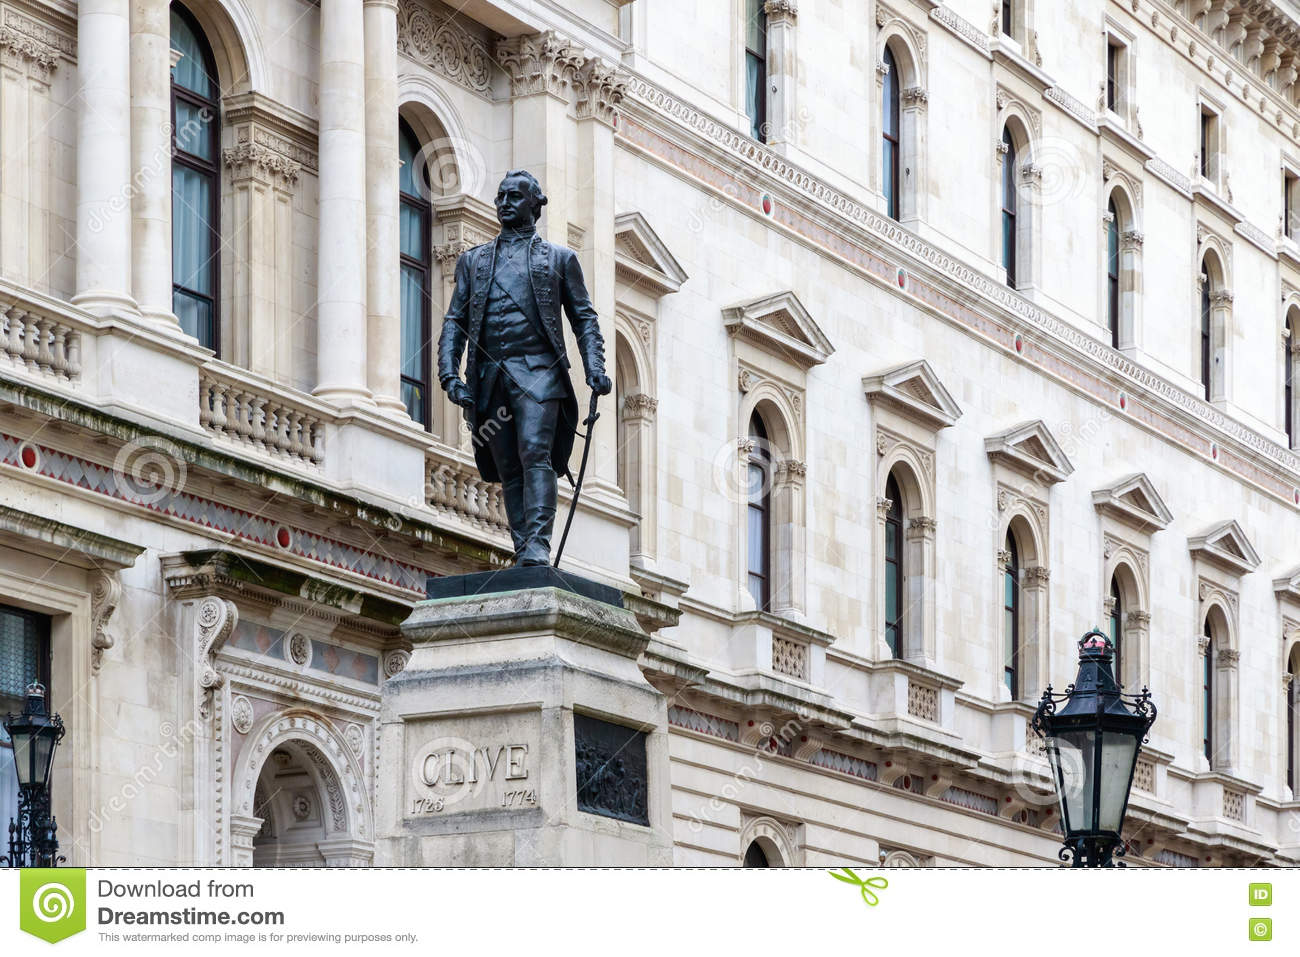 Foreign Office i Robert Clive pomnik w Londyn